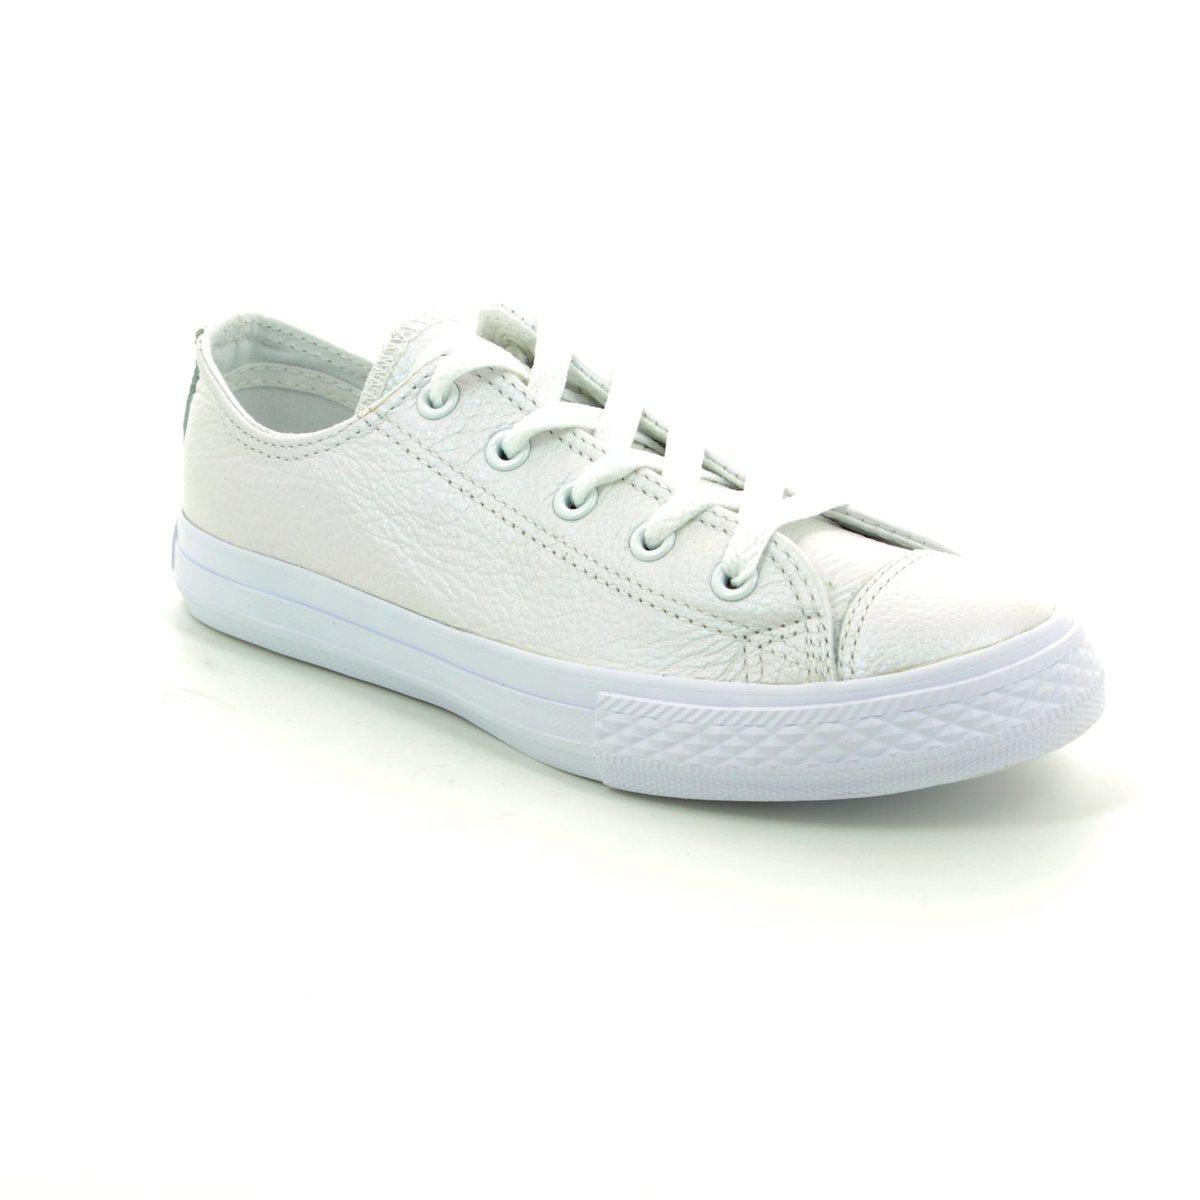 2756fcc787e Converse Trainers - White - 358009C Chuck Taylor All Star Ox Junior Leather